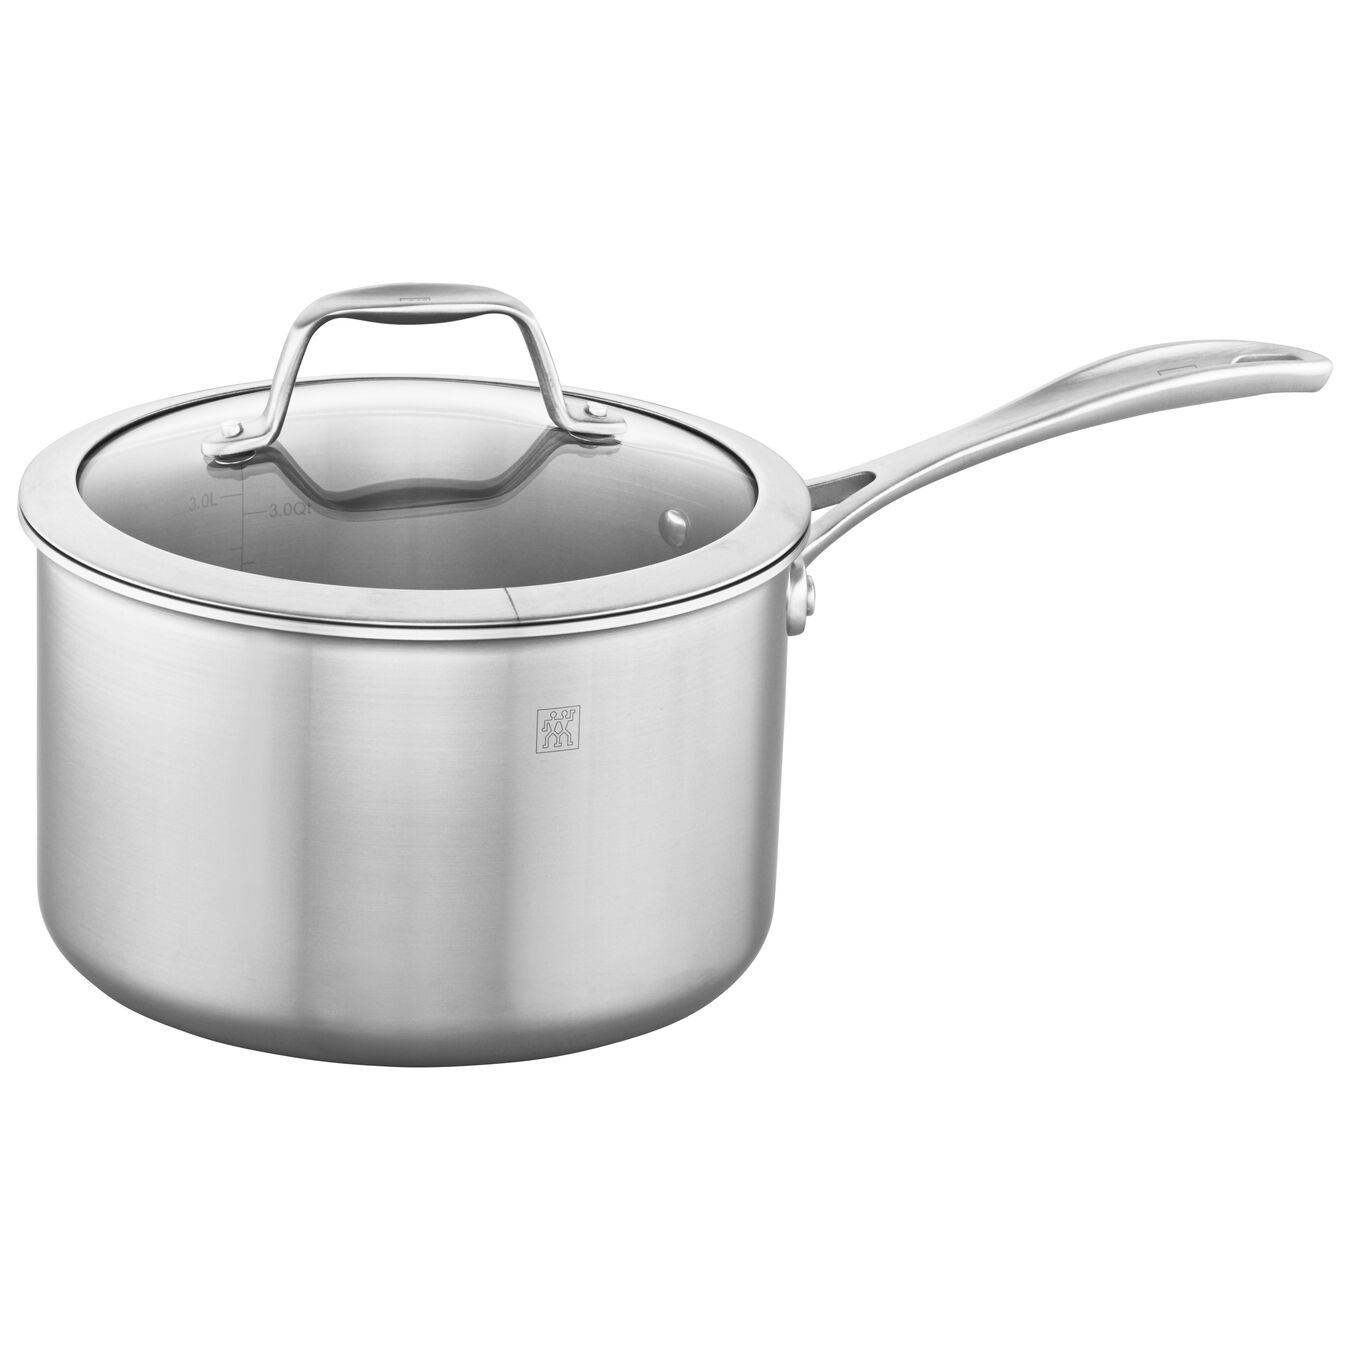 3-ply 4-qt Stainless Steel Saucepan,,large 1